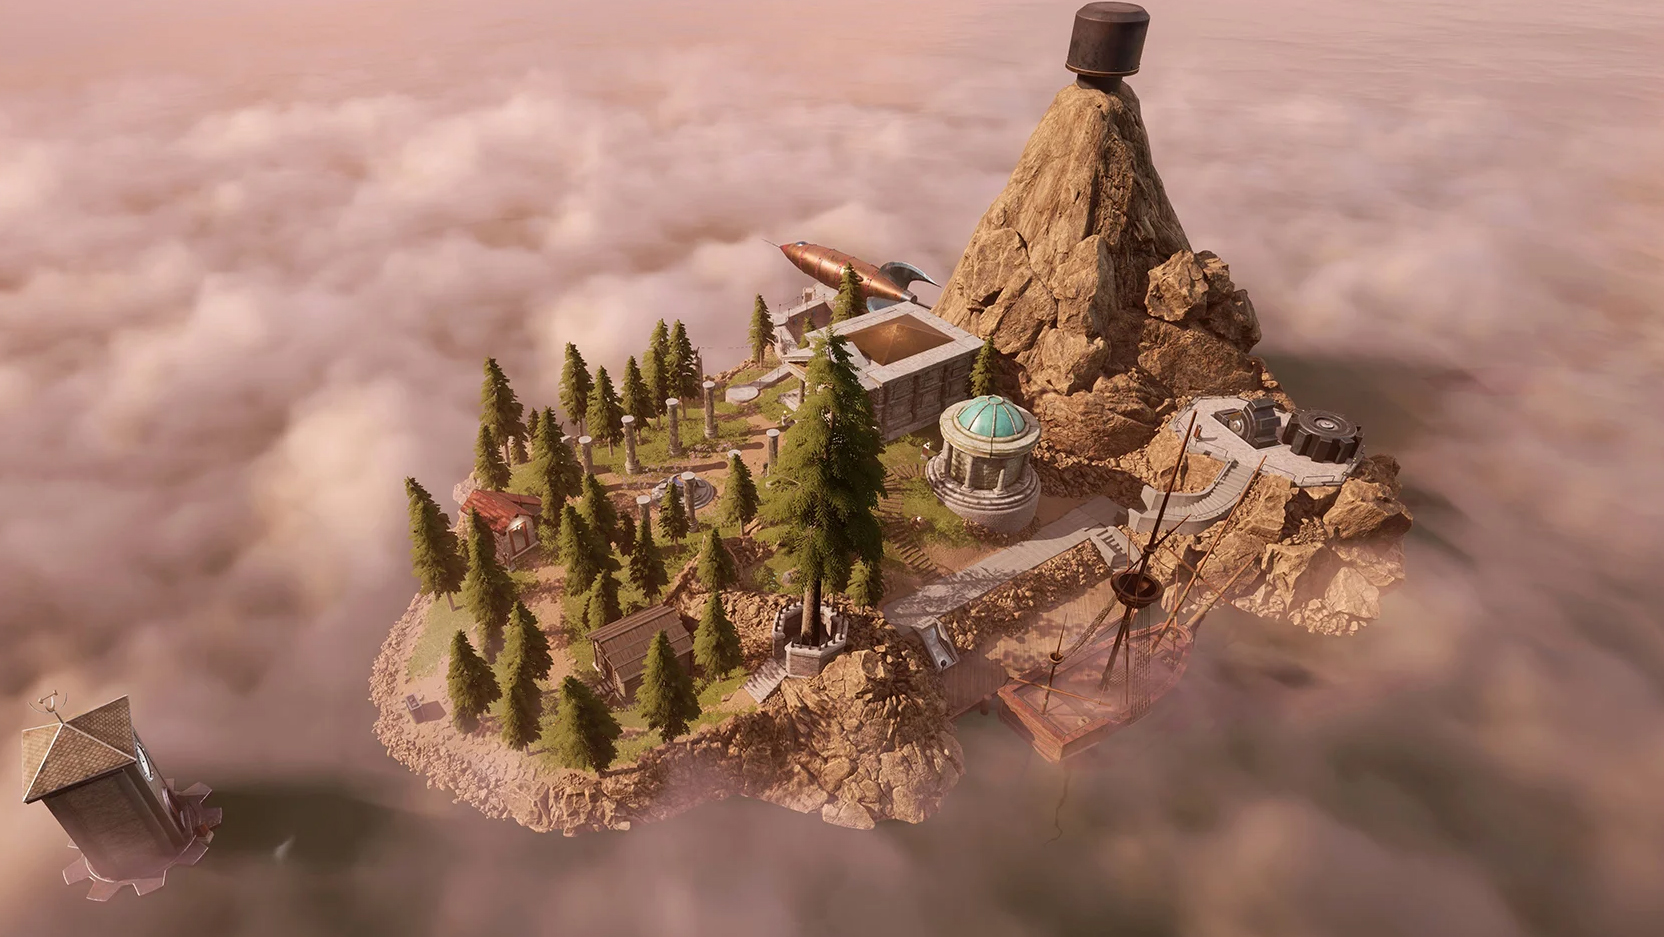 Myst is coming back again, this time 'reimagined' and playable in VR